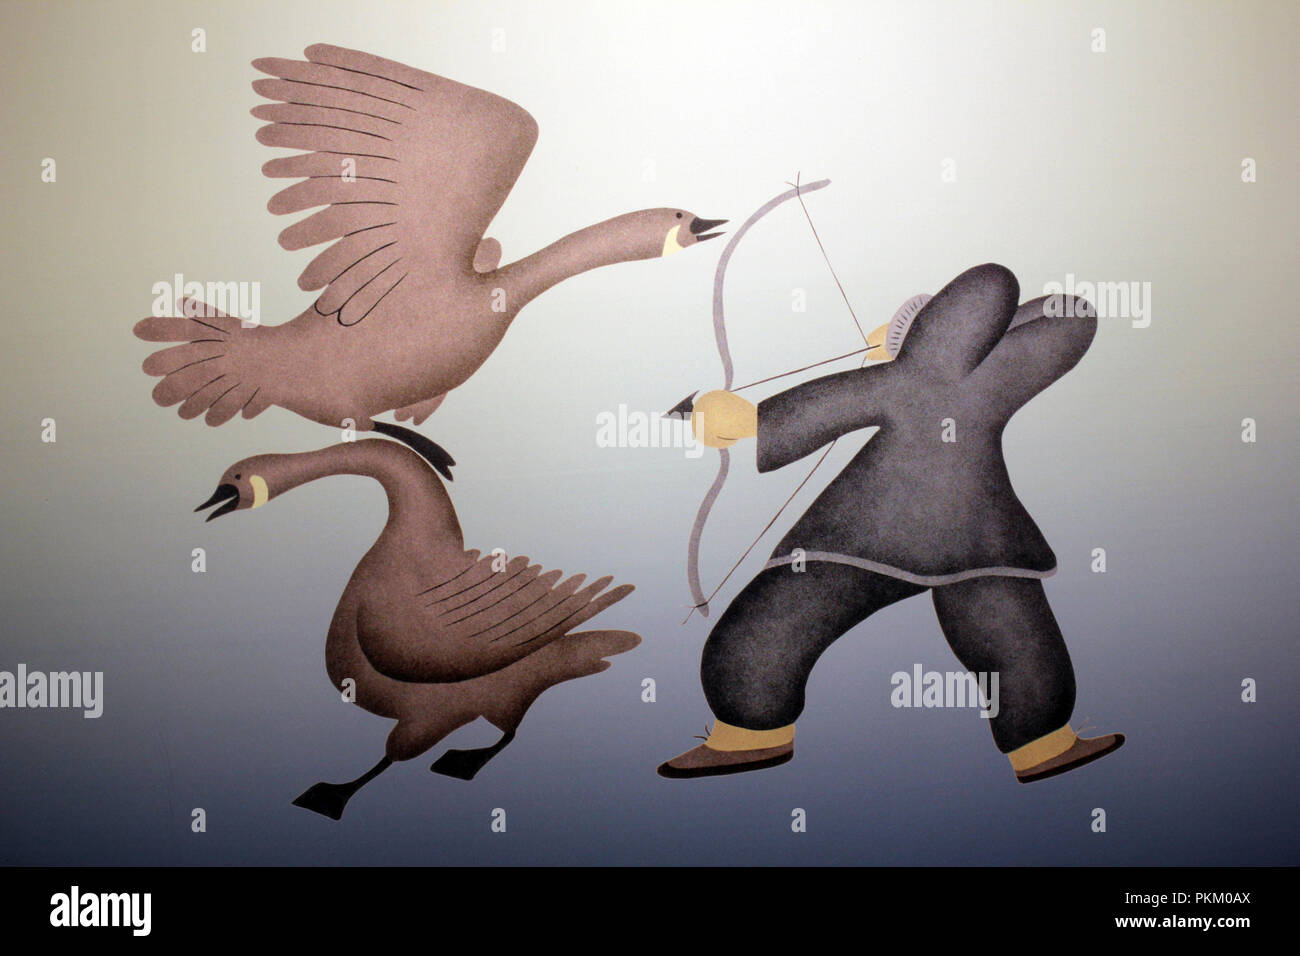 Inuit Art Depicting Hunter Shooting Geese with Bow and Arrow - Stock Image